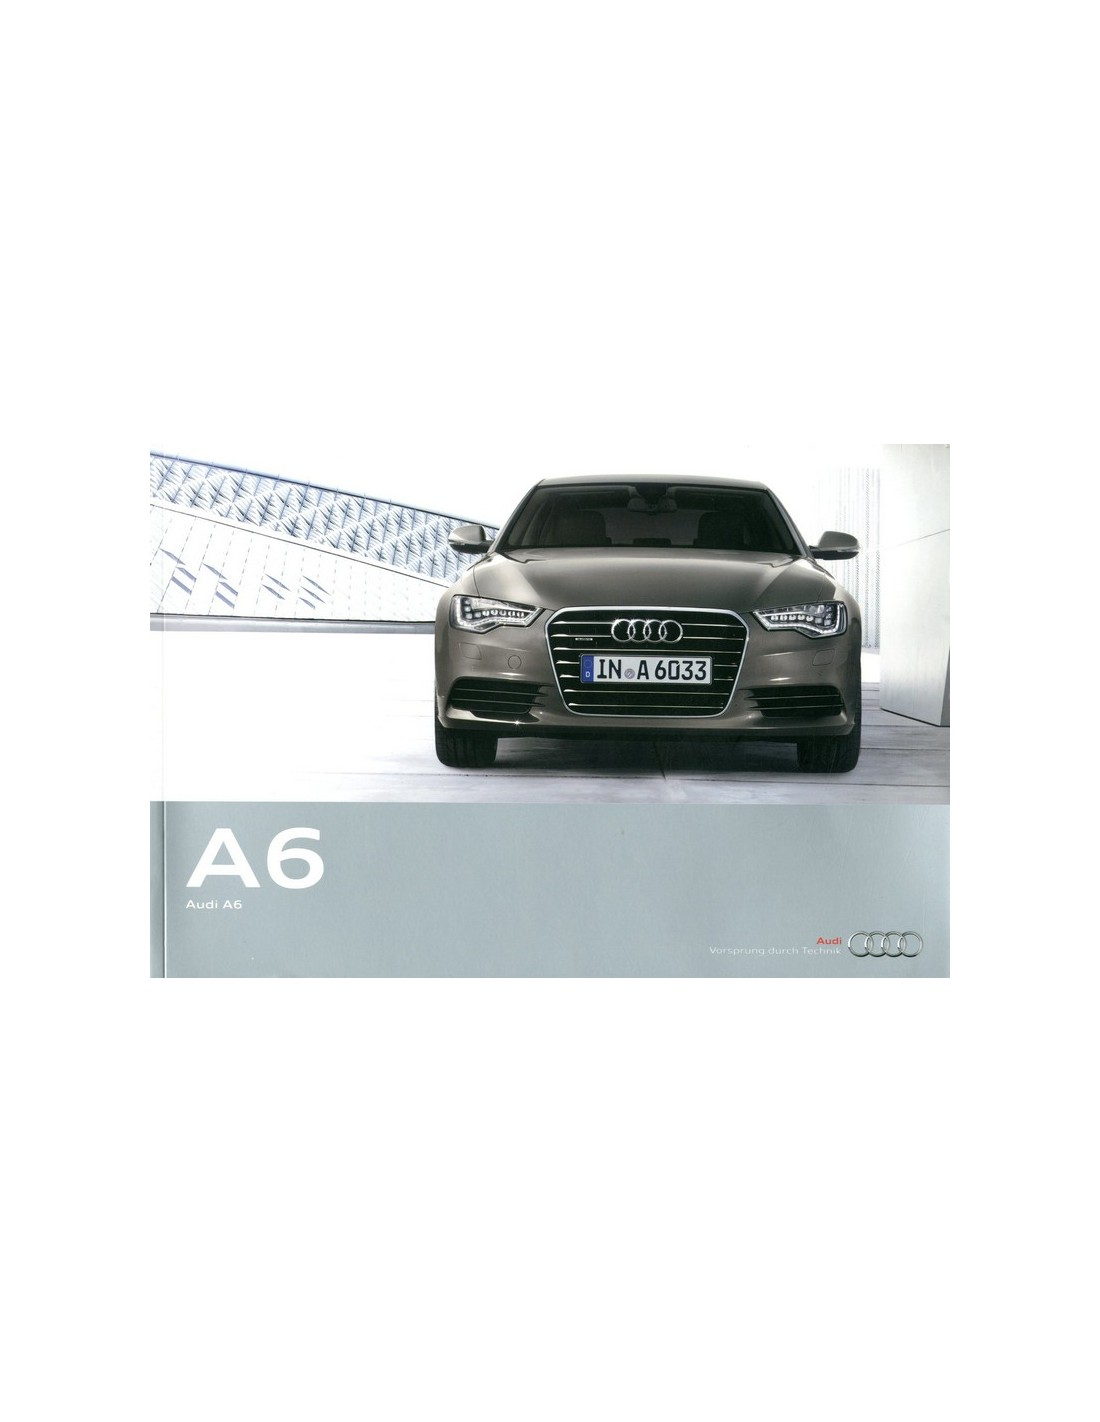 2014 audi a6 limousine brochure english india. Black Bedroom Furniture Sets. Home Design Ideas